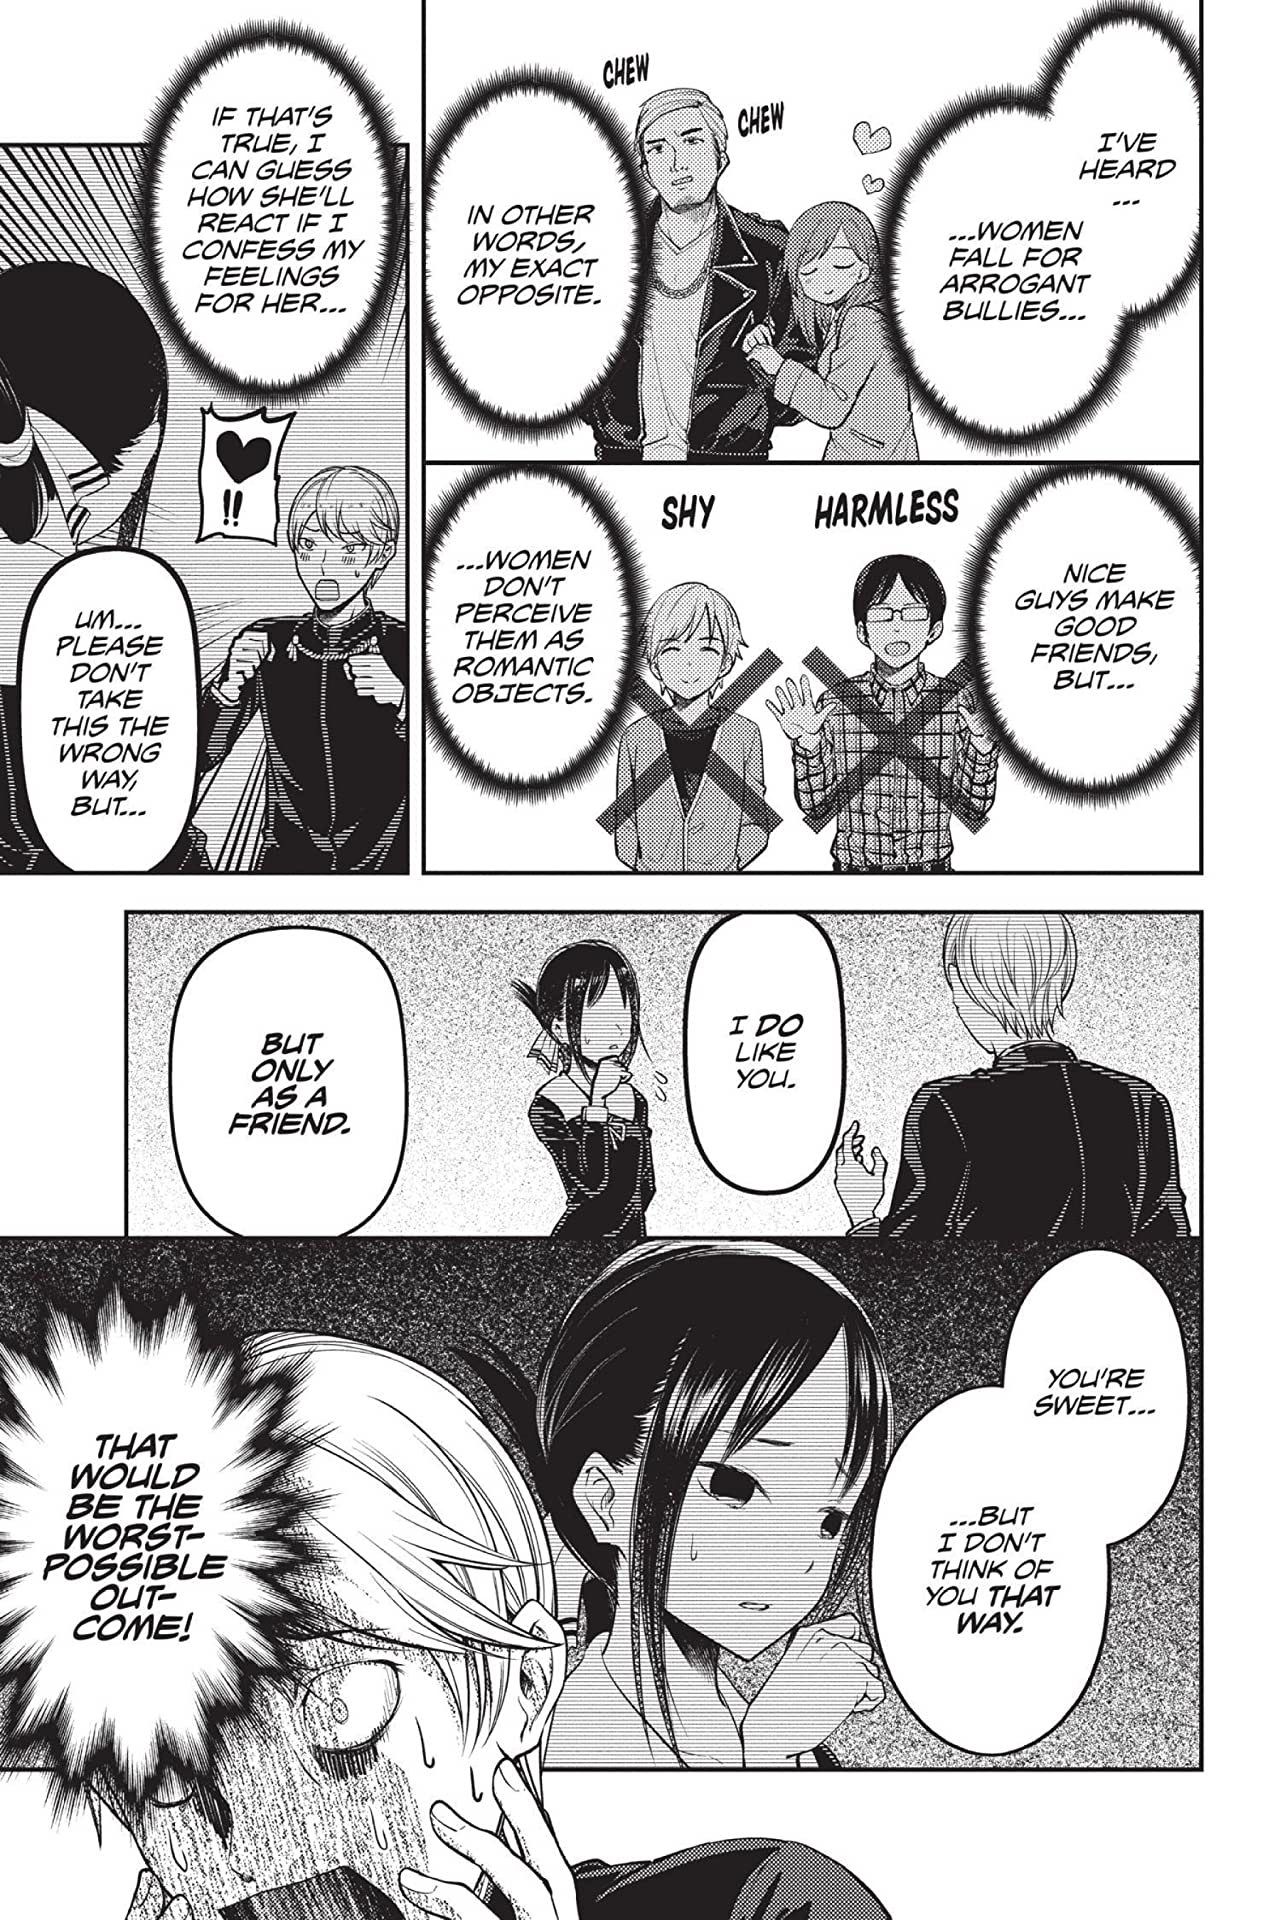 Kaguya-sama: Love Is War Vol. 10